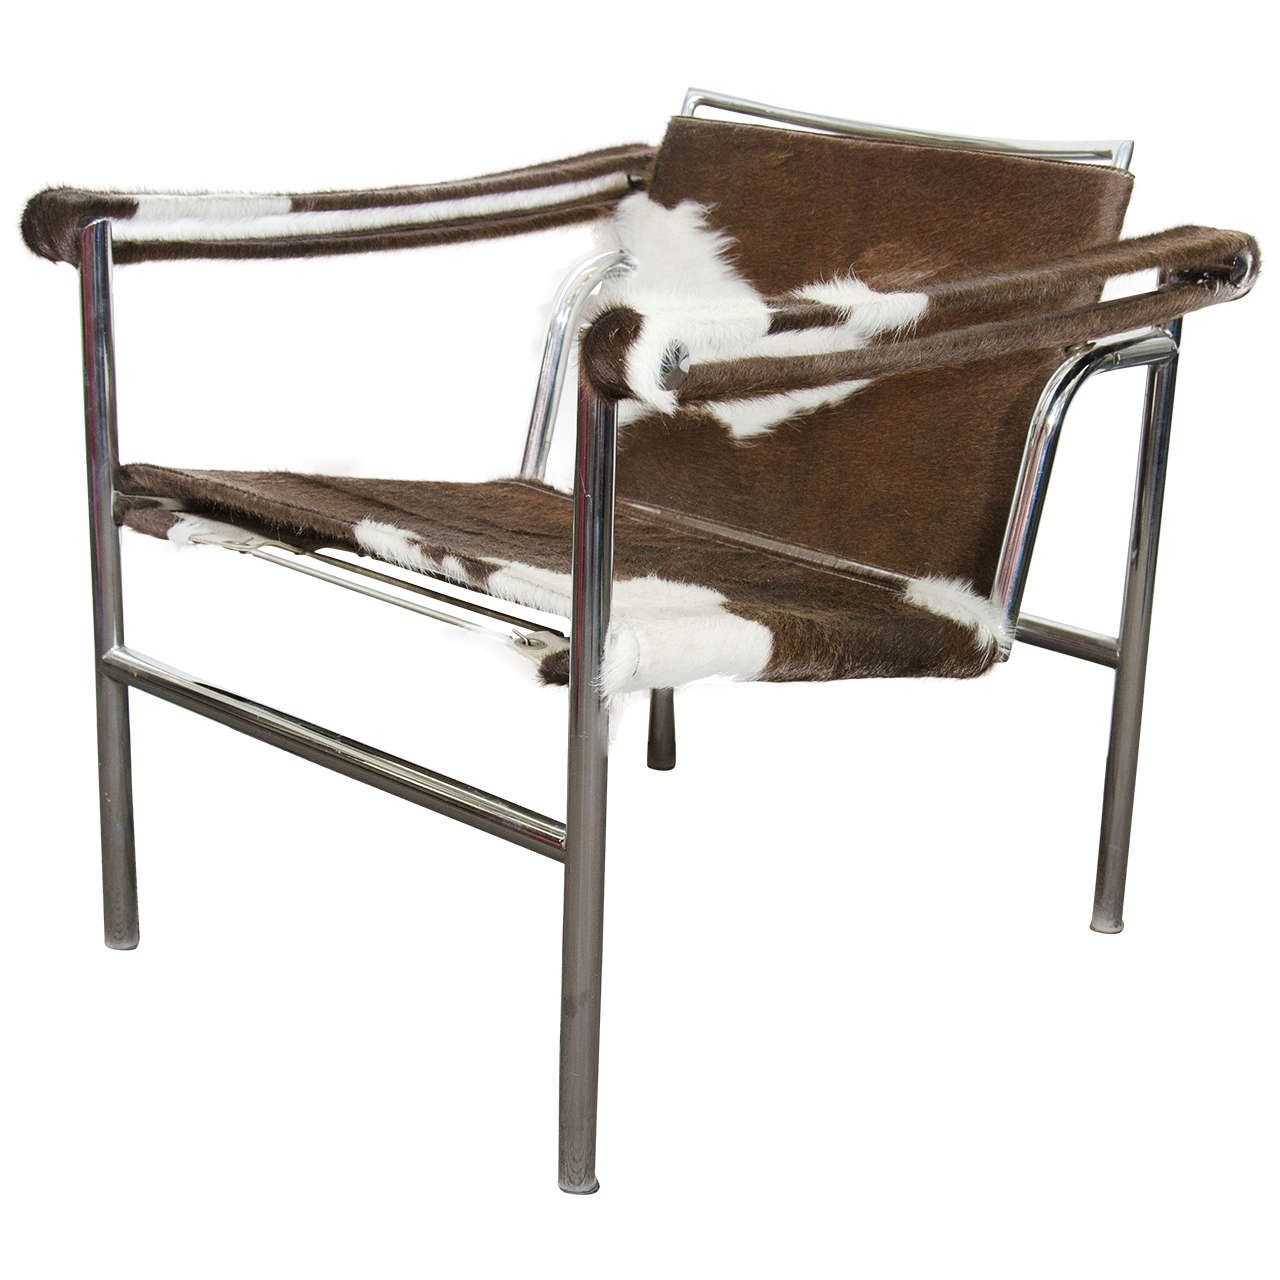 Attirant A Vintage LC1 Sling Chair Newly Reupholstered In Cowhide With Adjustable  Back And A Tubular Chrome